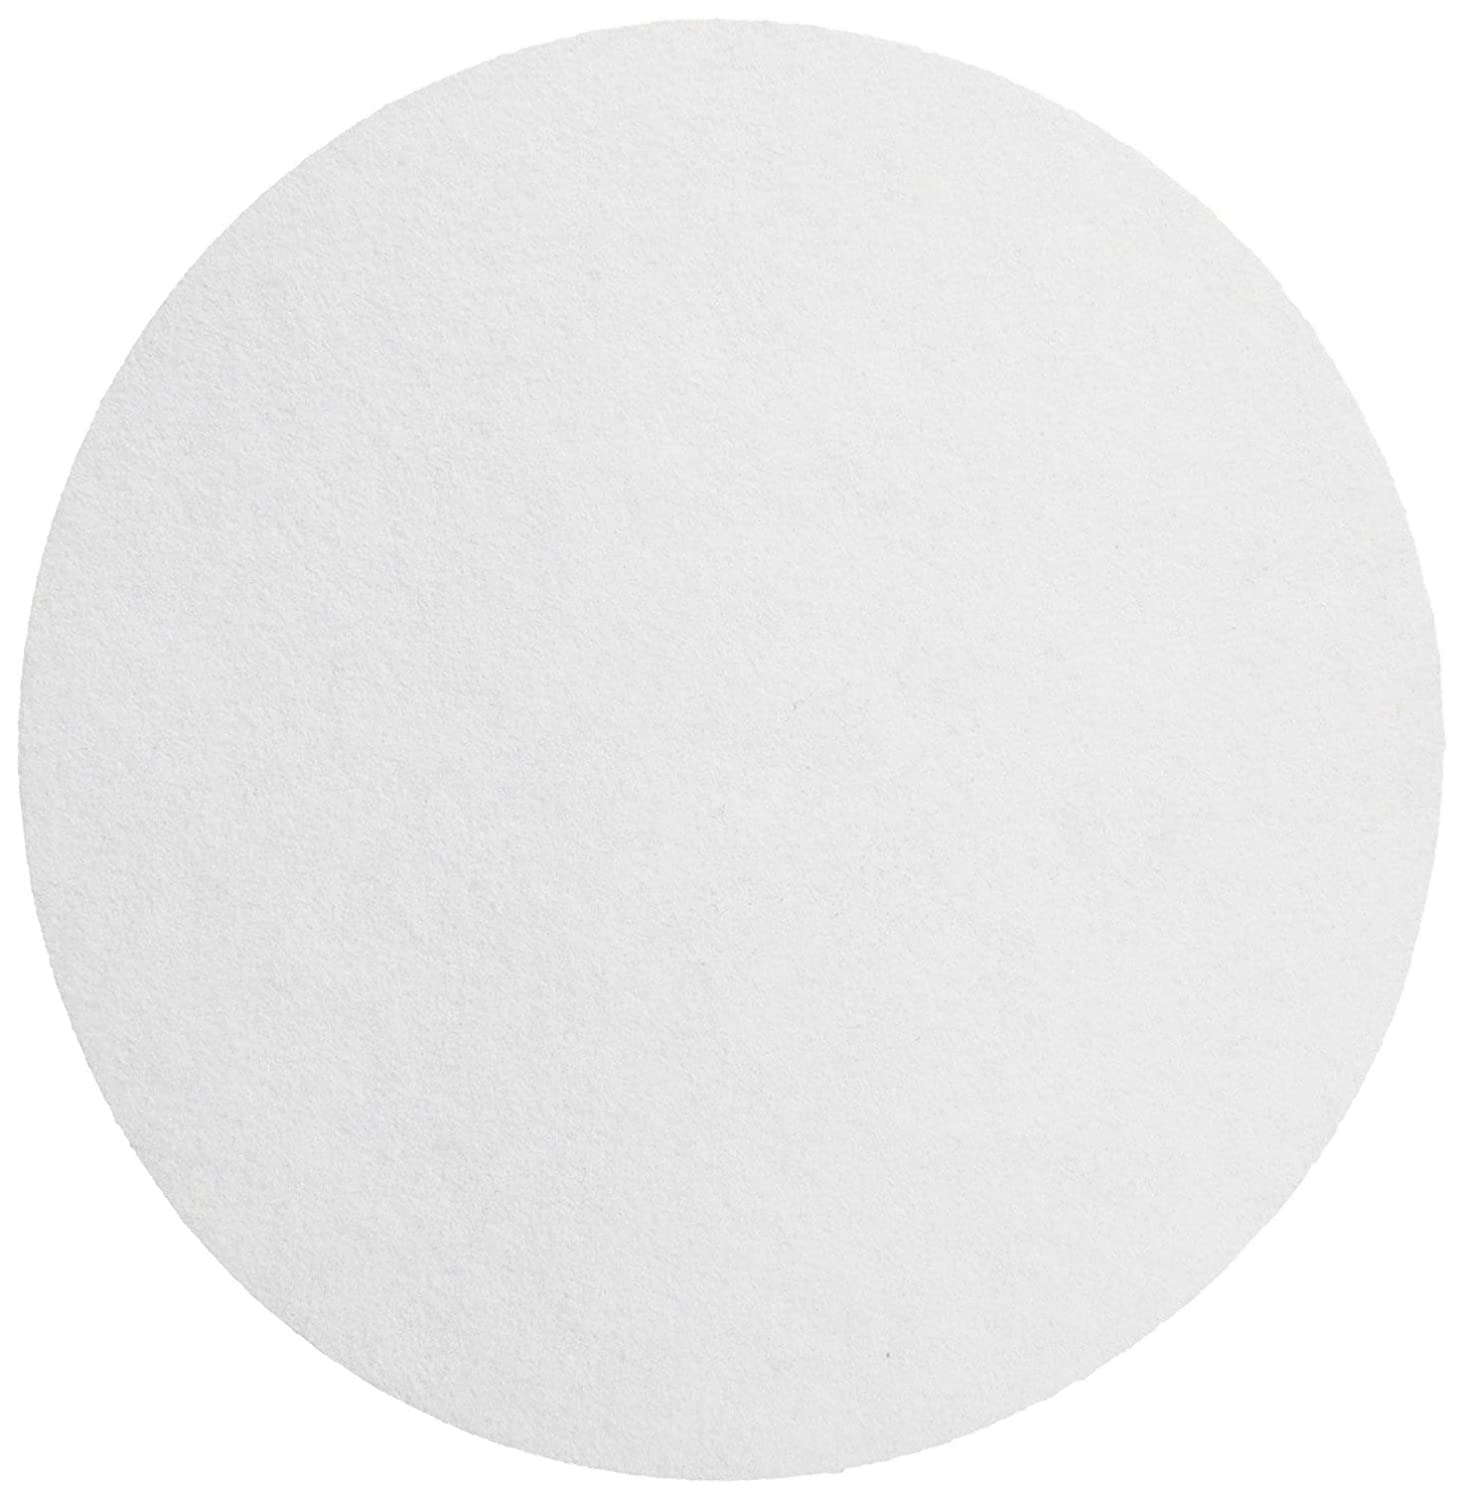 Ahlstrom 6150-2700 Qualitative Filter Paper, 27cm Diameter, 25 Micron, Fast Flow, Grade 615 (Pack of 15)